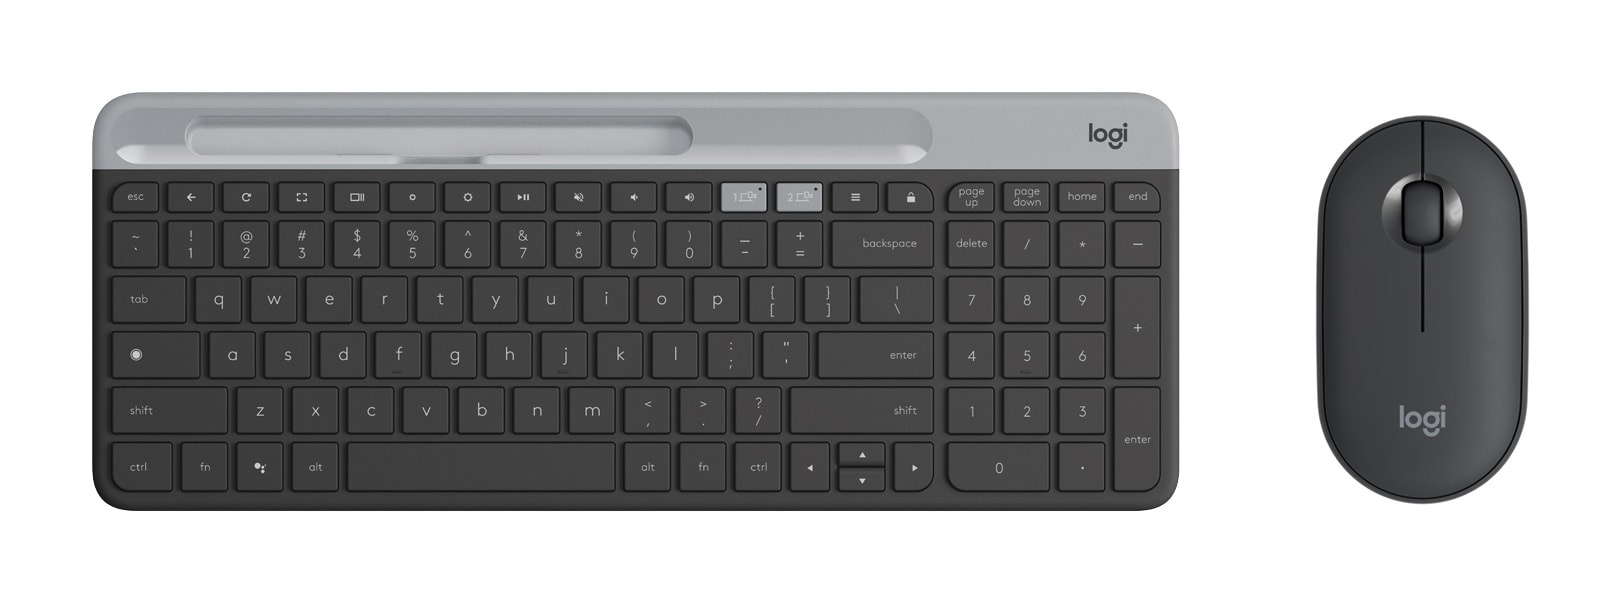 Logitech unveils its first mouse and keyboard built for Chrome OS